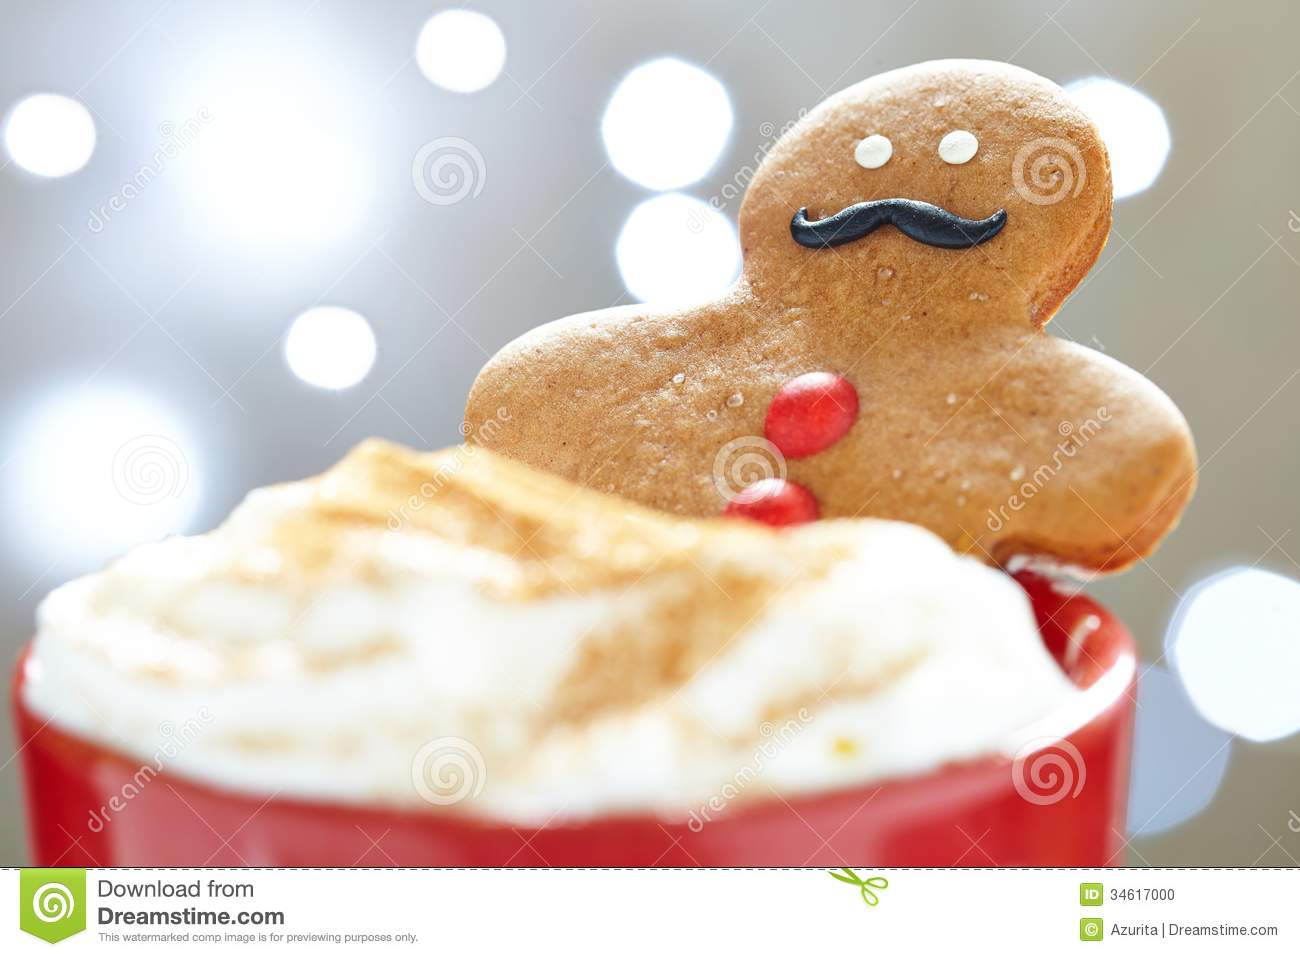 Gingerbread Man In Hot Chocolate Stock Photo - Image: 34617000